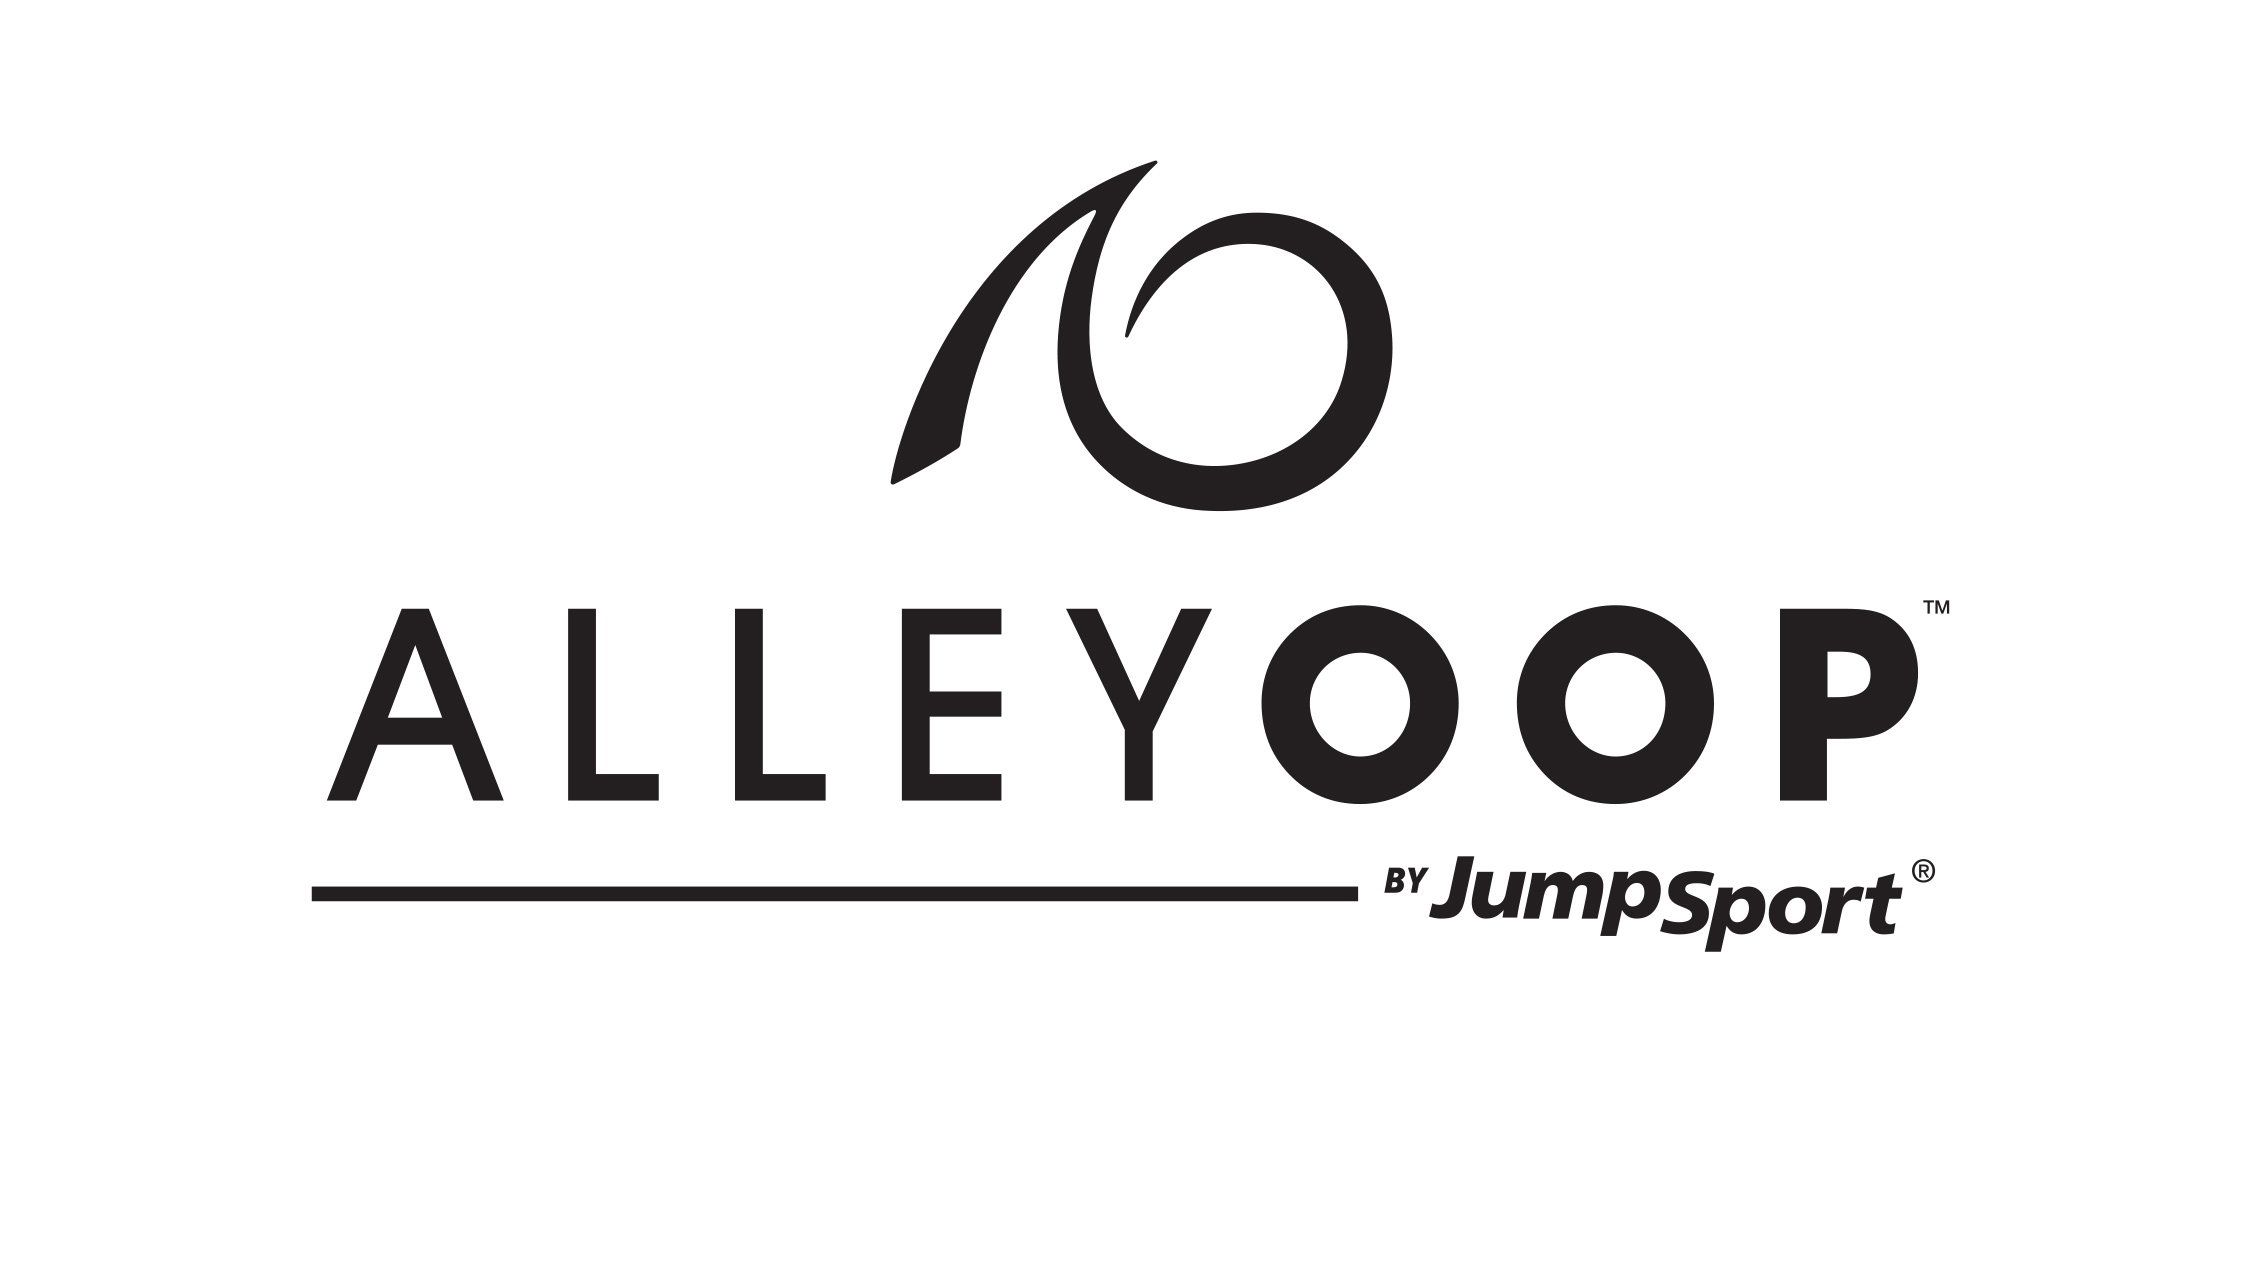 AO-ALLEYOOP-Logo-byJumpSport-Tall_18a